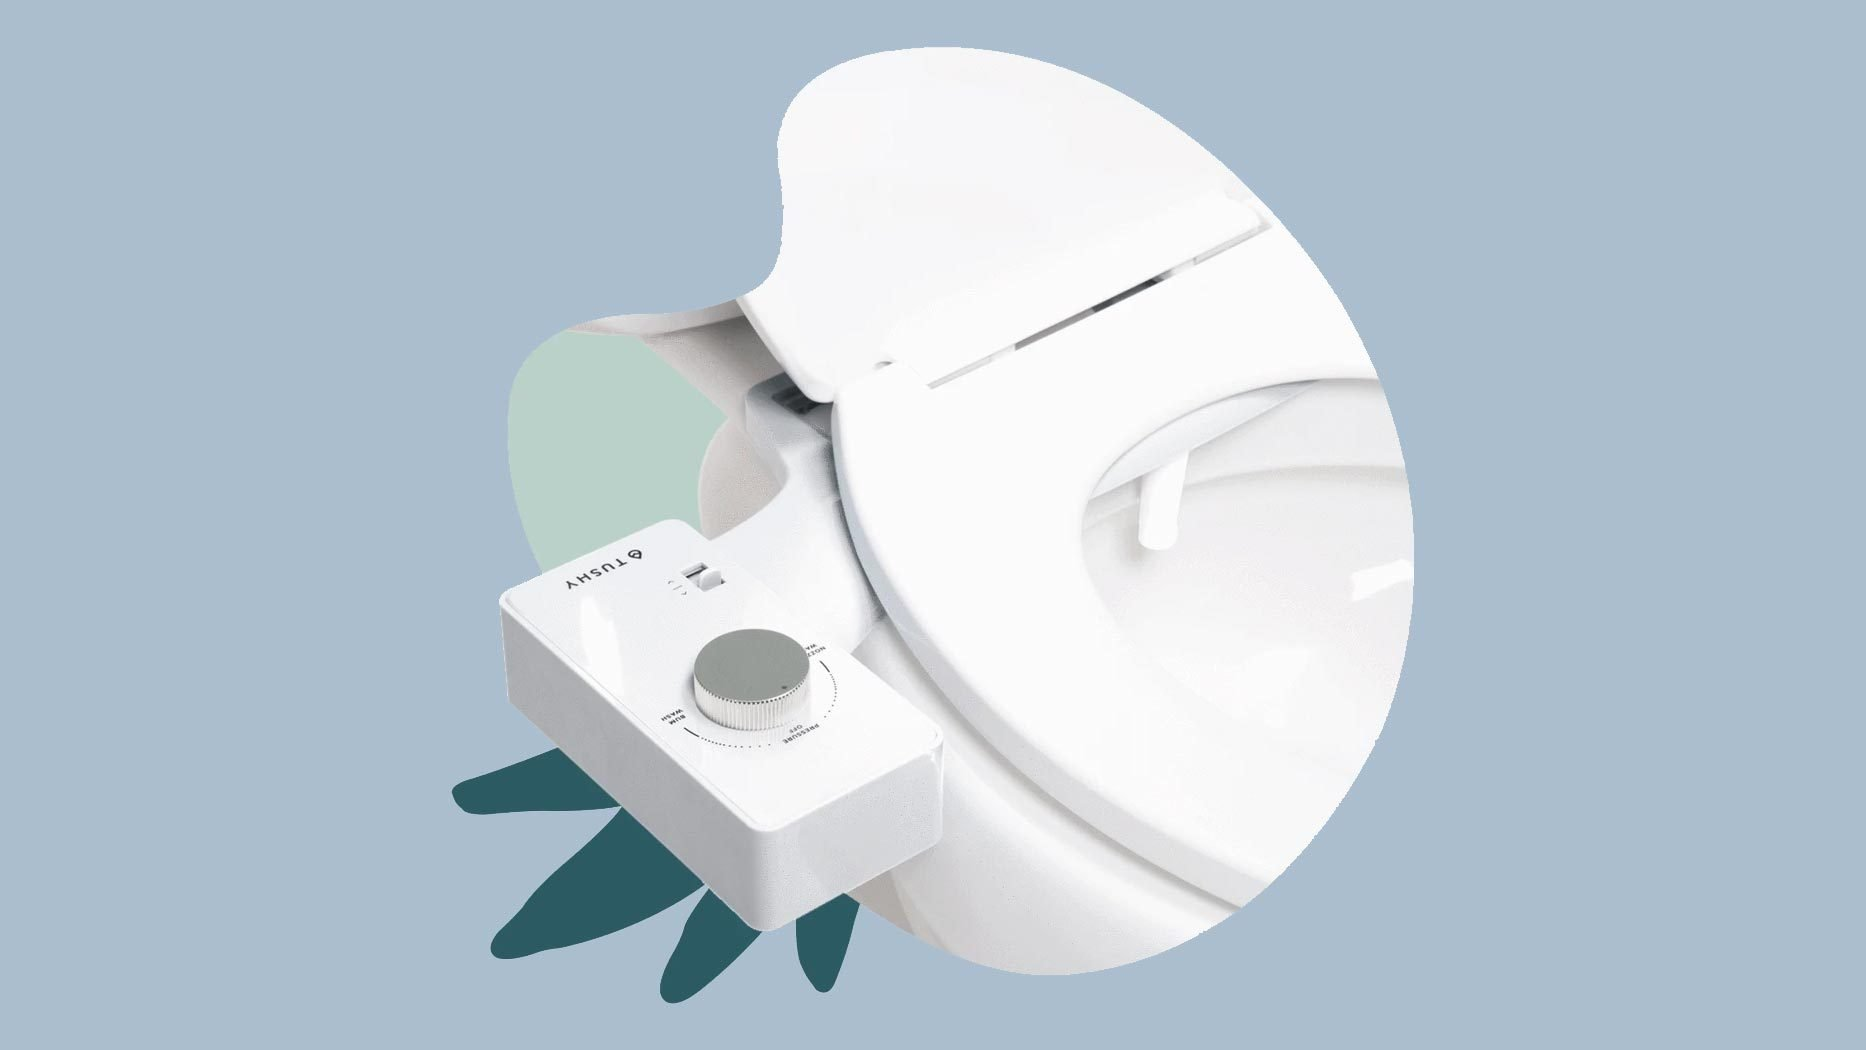 I Tried A Bidet And I Ll Never Use Toilet Paper Again Reader S Digest